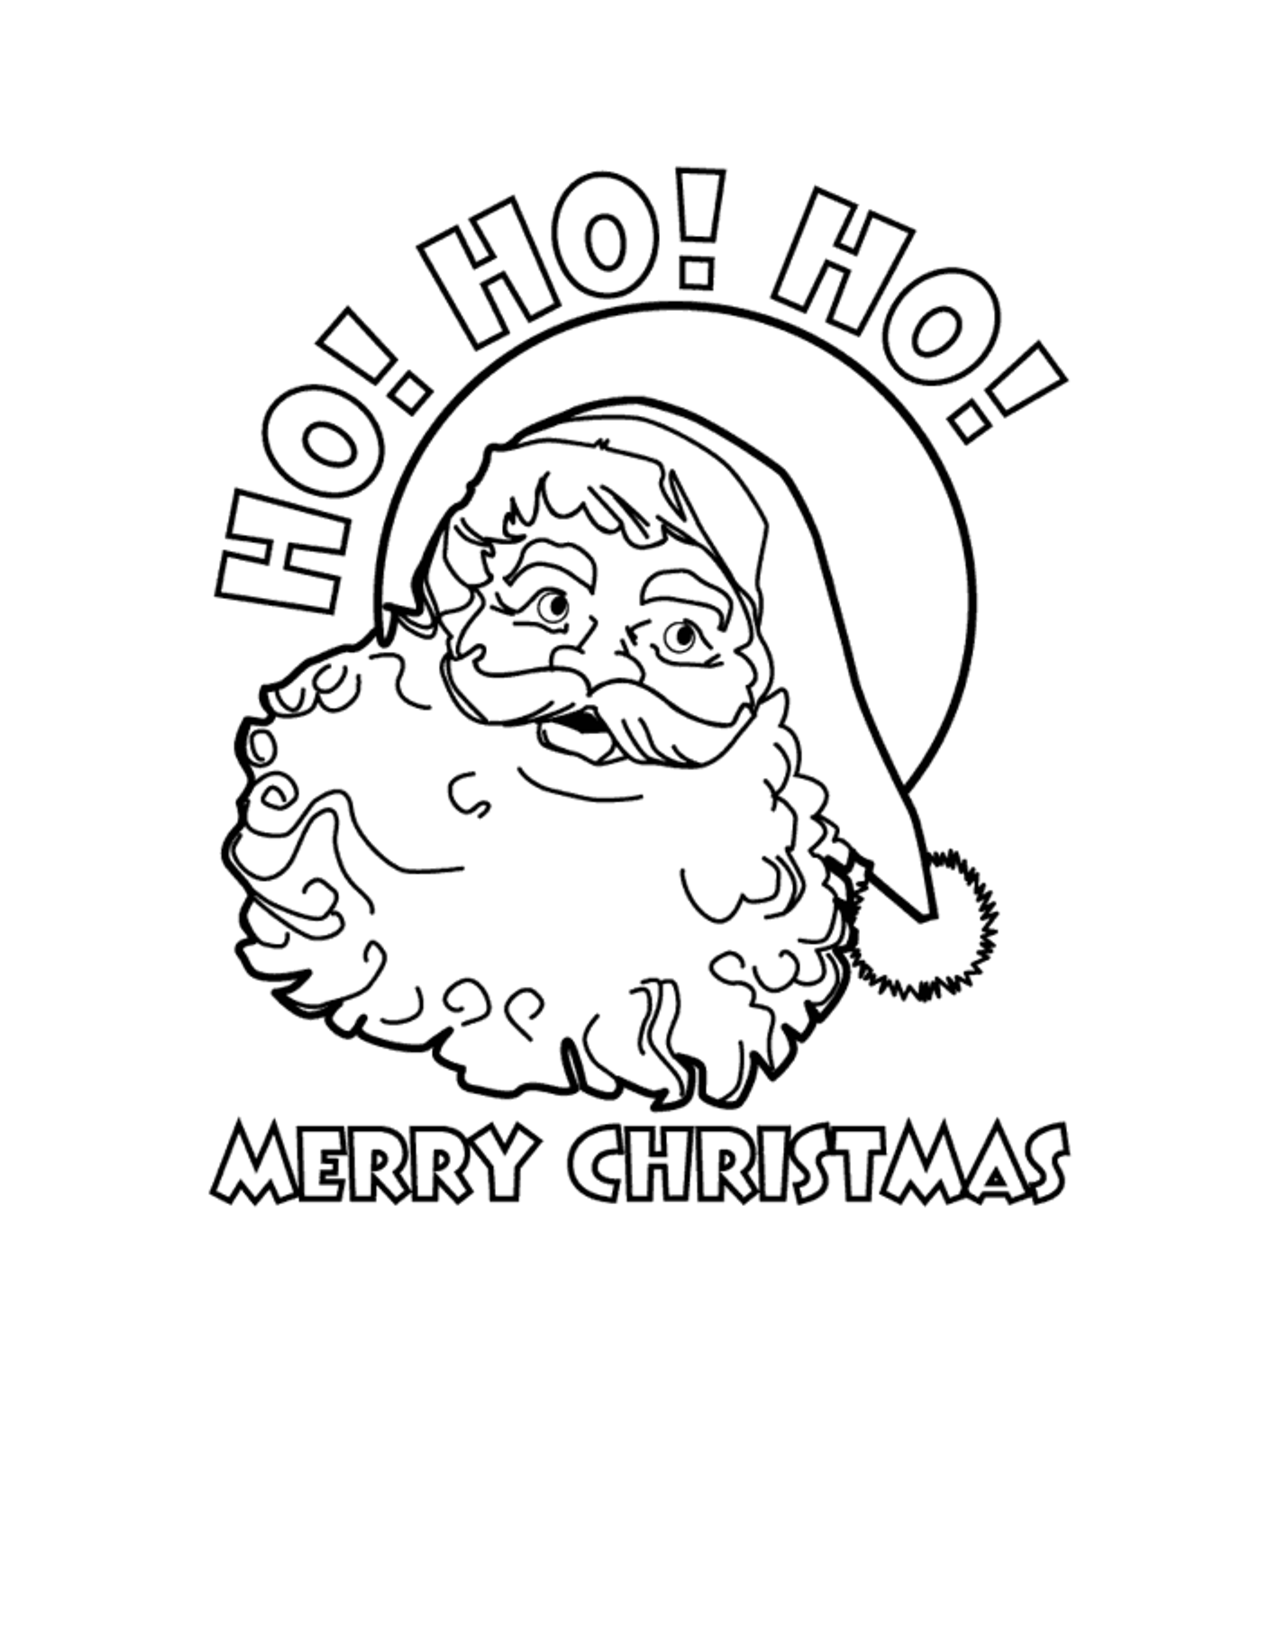 Free printables christmas coloring pages - Merry Christmas Printable Coloring Pages Ho Ho Ho Merry Christmas Santa Free Printable Coloring Sheet